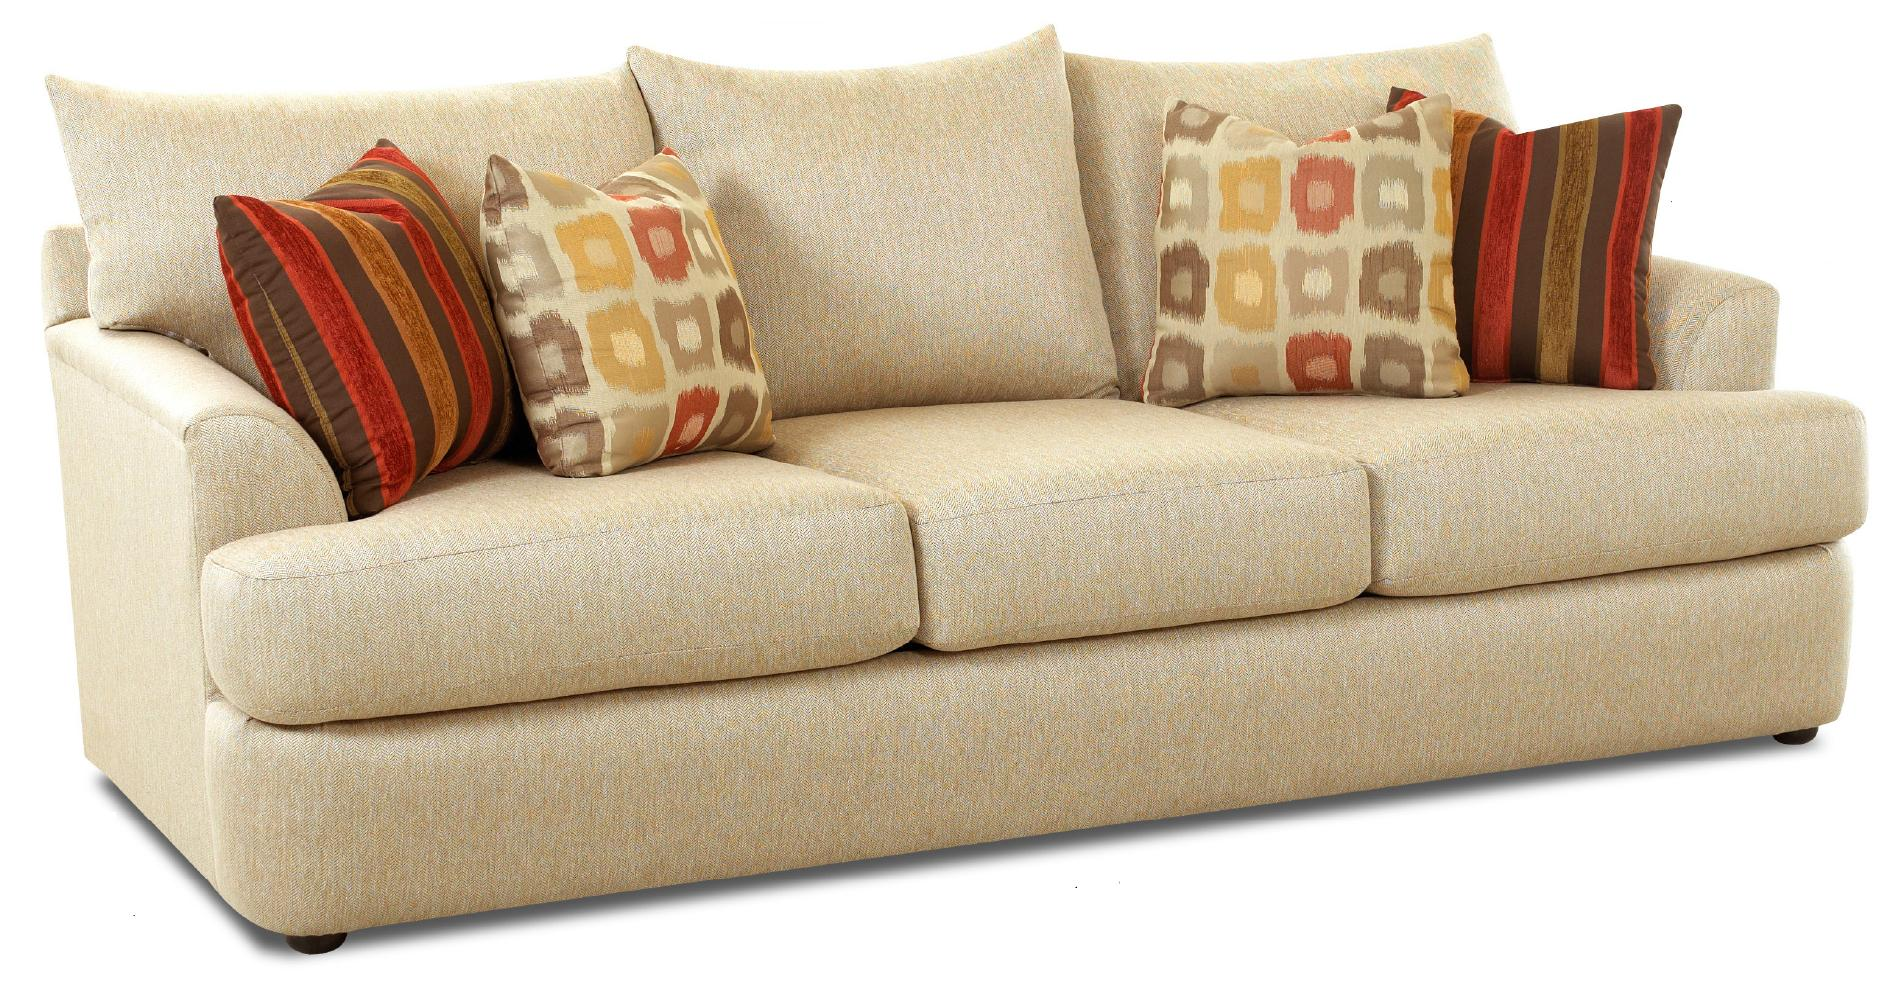 Three over three sofa with accent pillows by klaussner wolf and gardiner wolf furniture - Accent pillows for couch ...